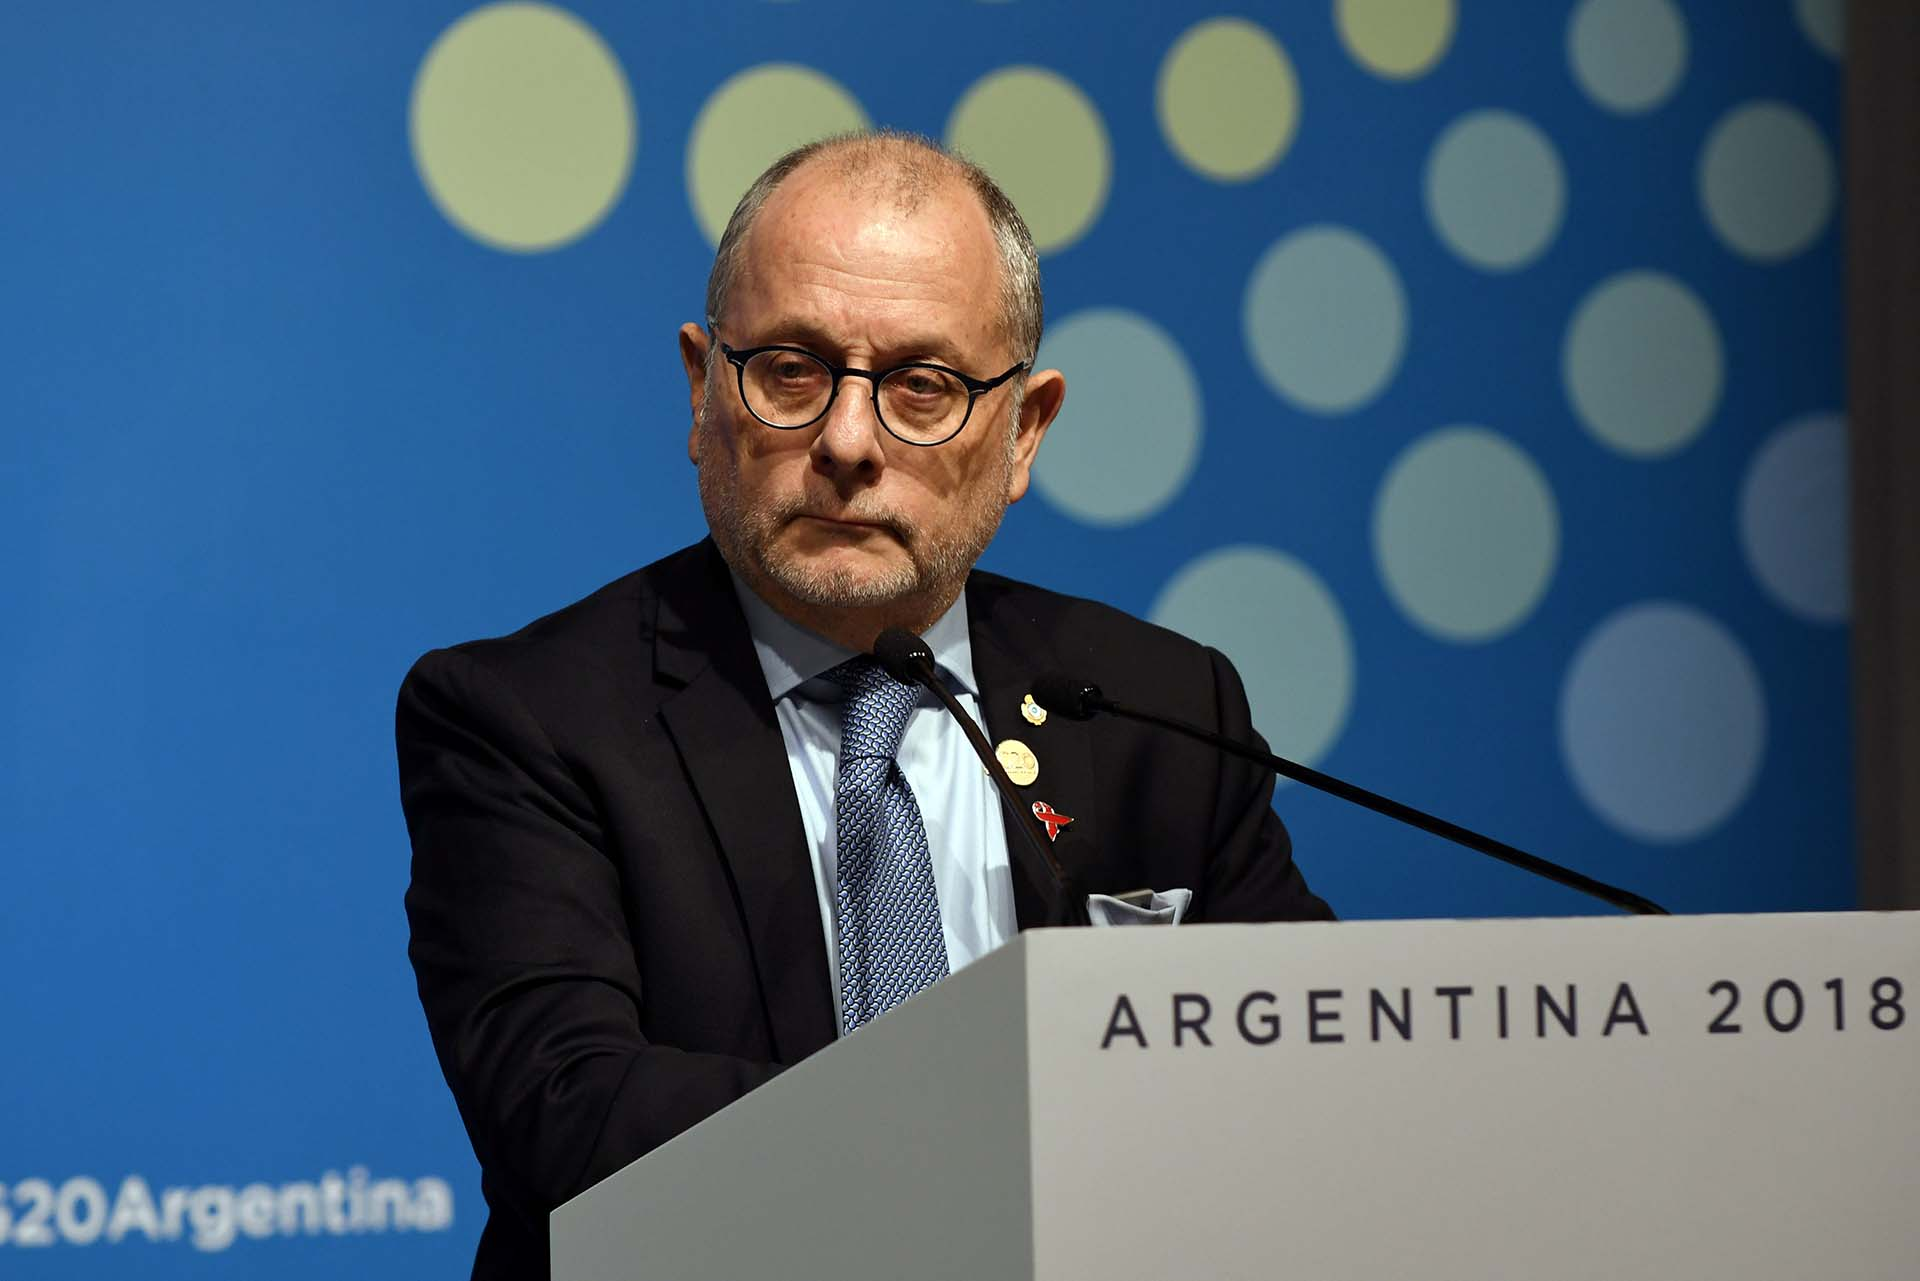 El canciller argentino Jorge Faurie